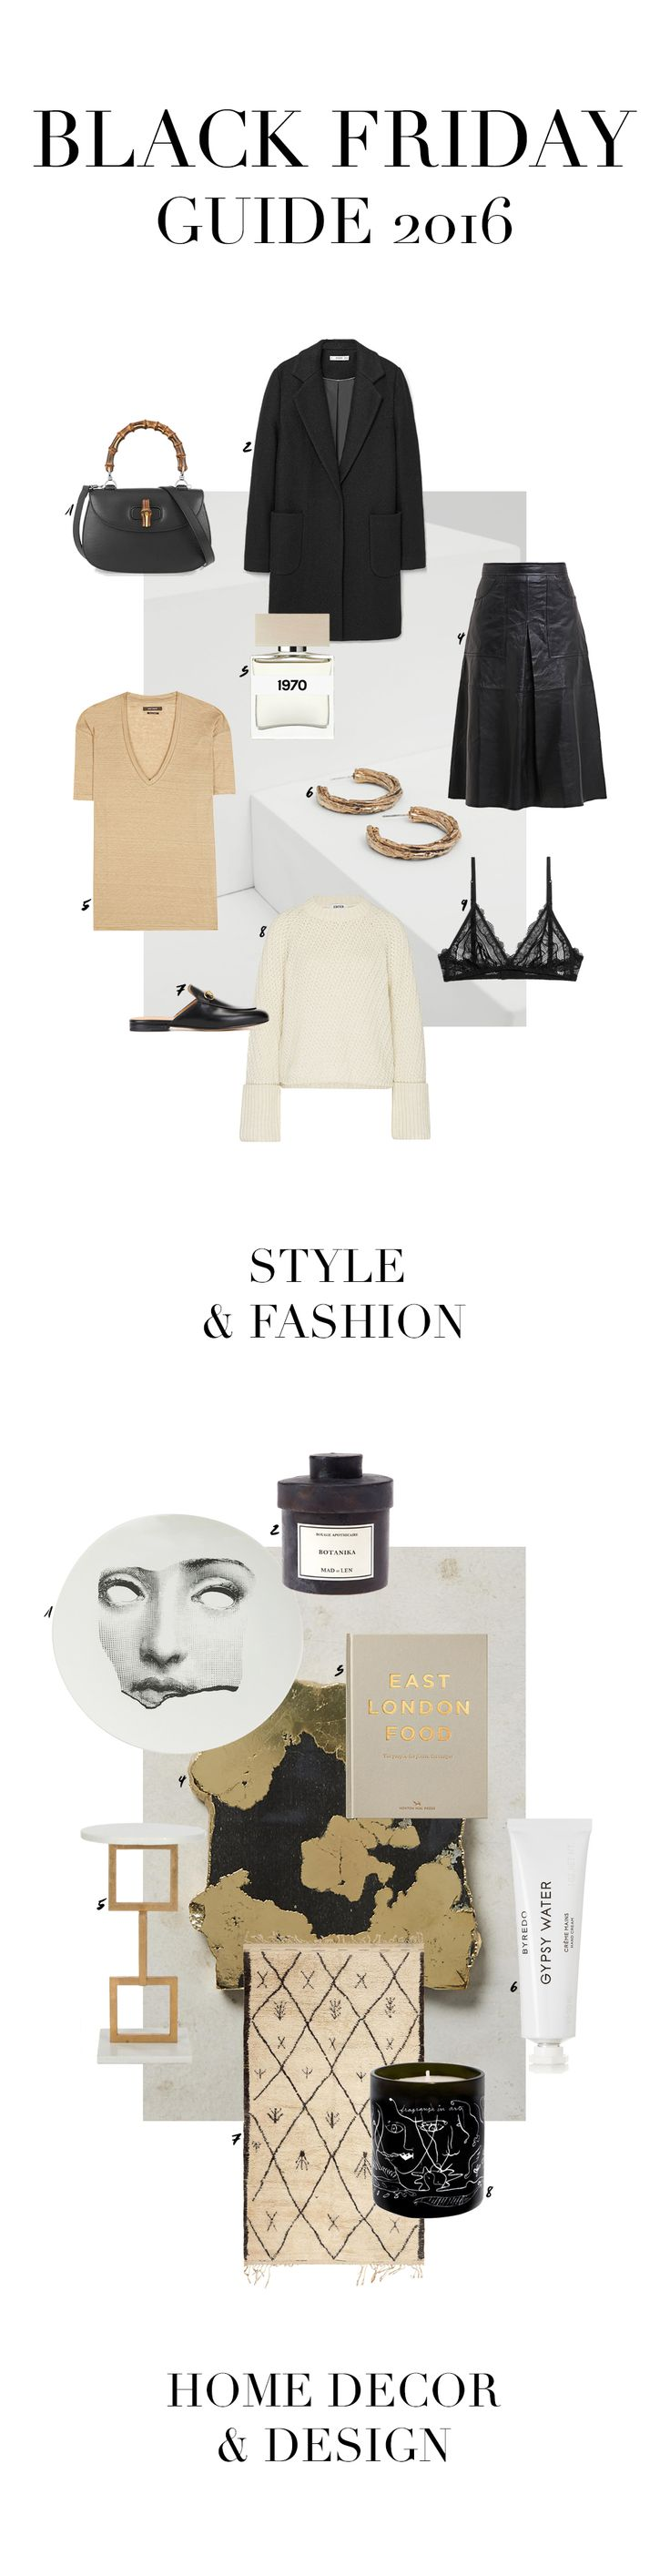 A curated Black Friday Guide on thedashingrider.com featuring the best deals and codes. With All Saints, Anthropologie, Asos, Avenue 32, LuisaViaRoma, Shopbop, Urban Outfitters, Topshop and a lot more.